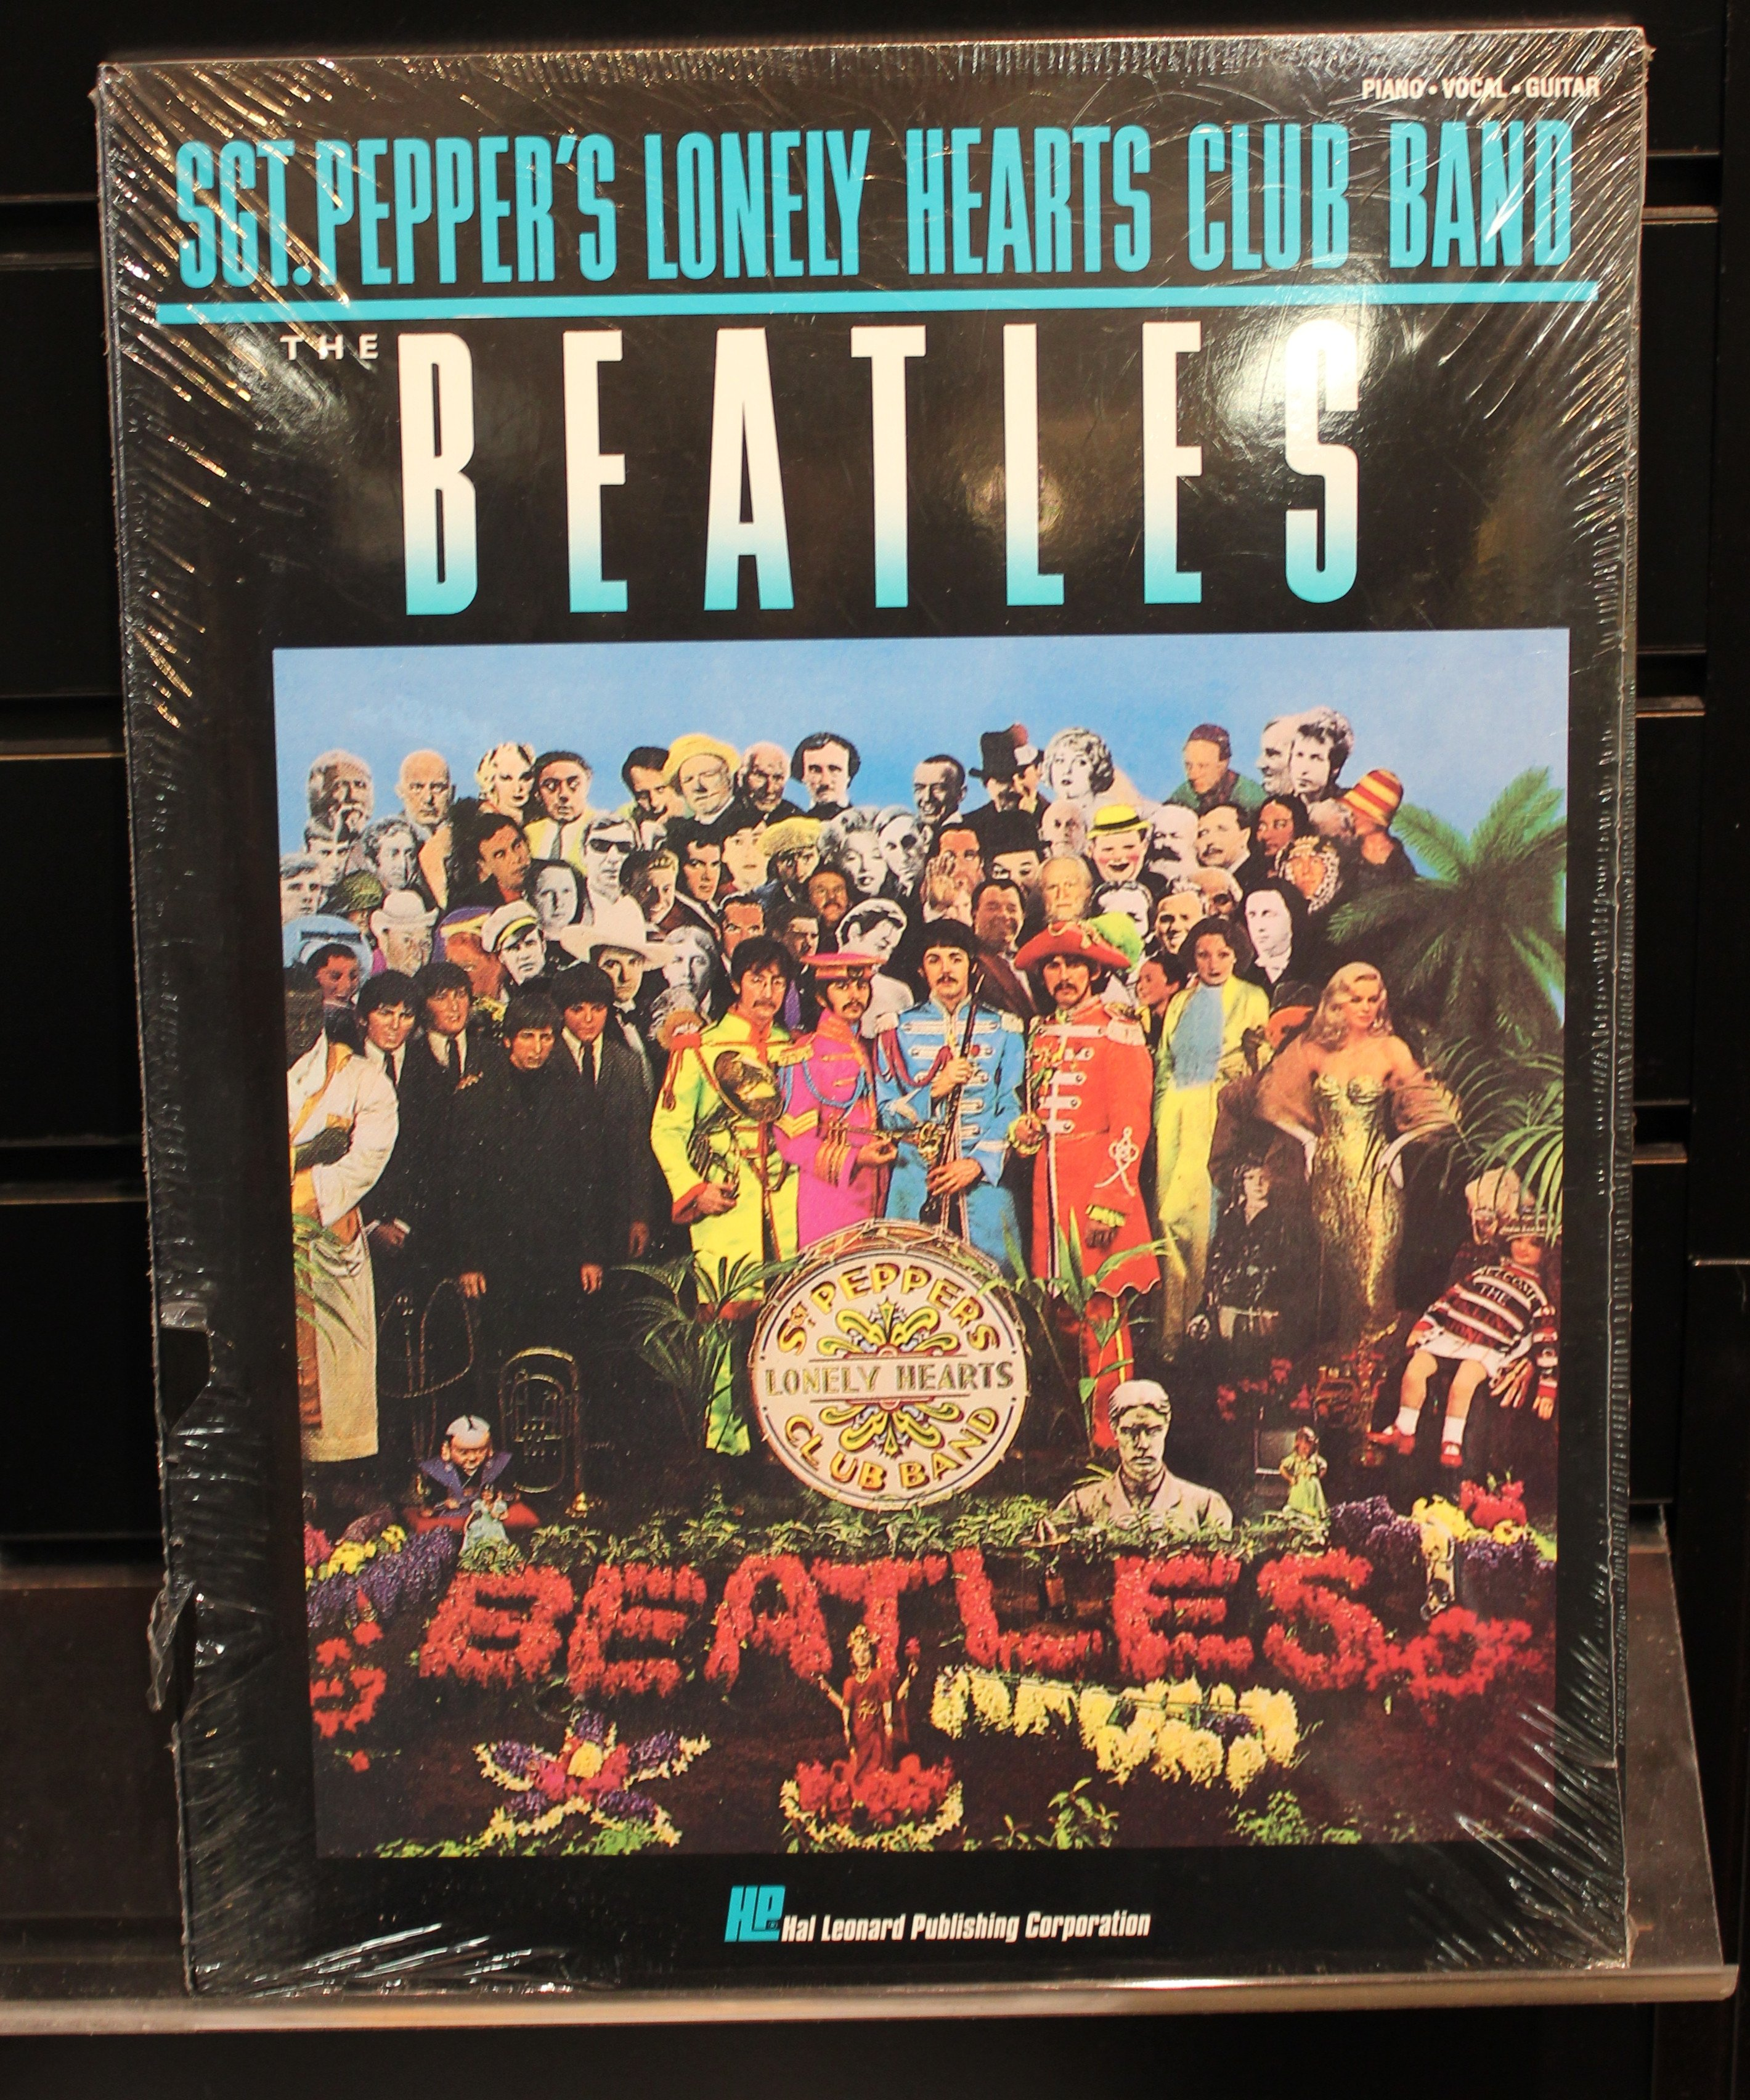 The Beatles Sergeant Pepper's Lonely Hearts Club Band